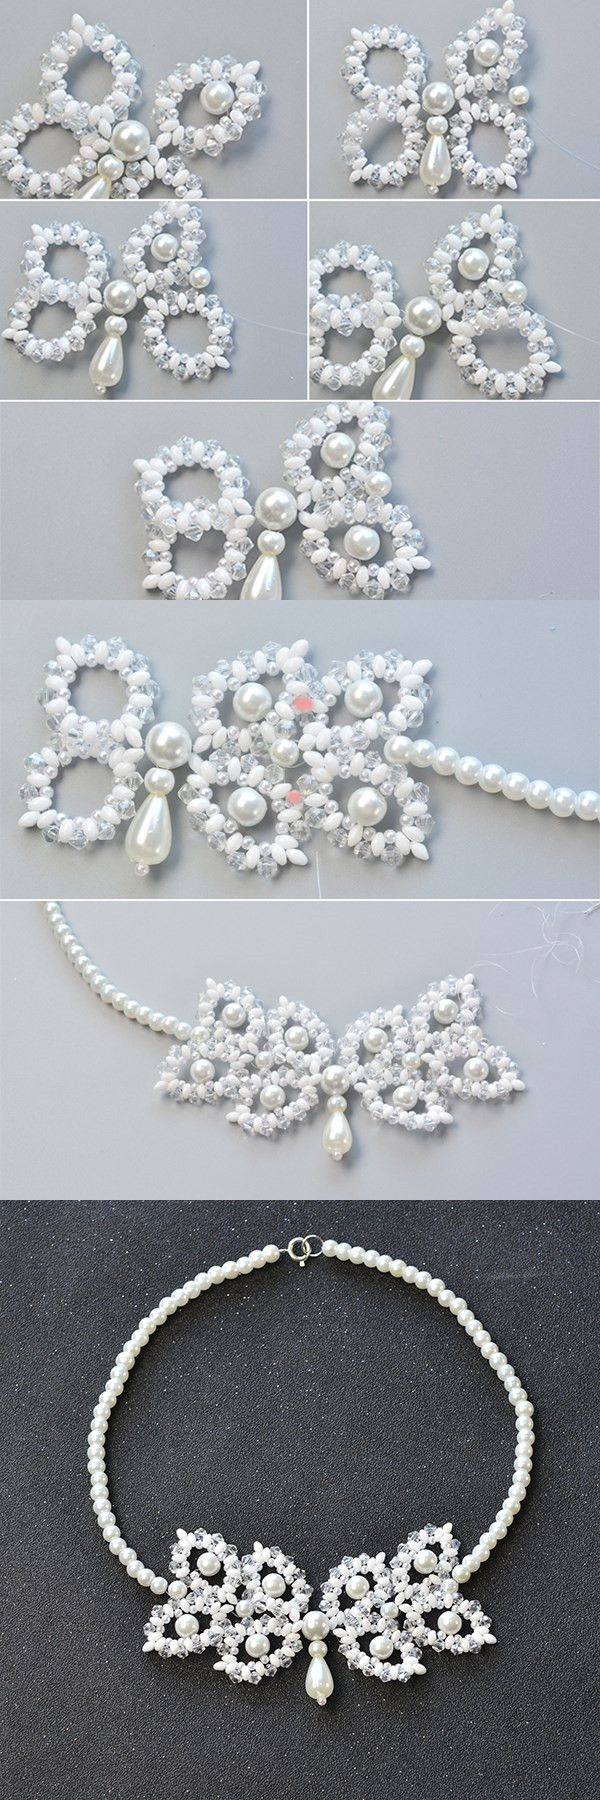 Like The 2 Hole Seed Beads Necklacethe Details Will Be Published By